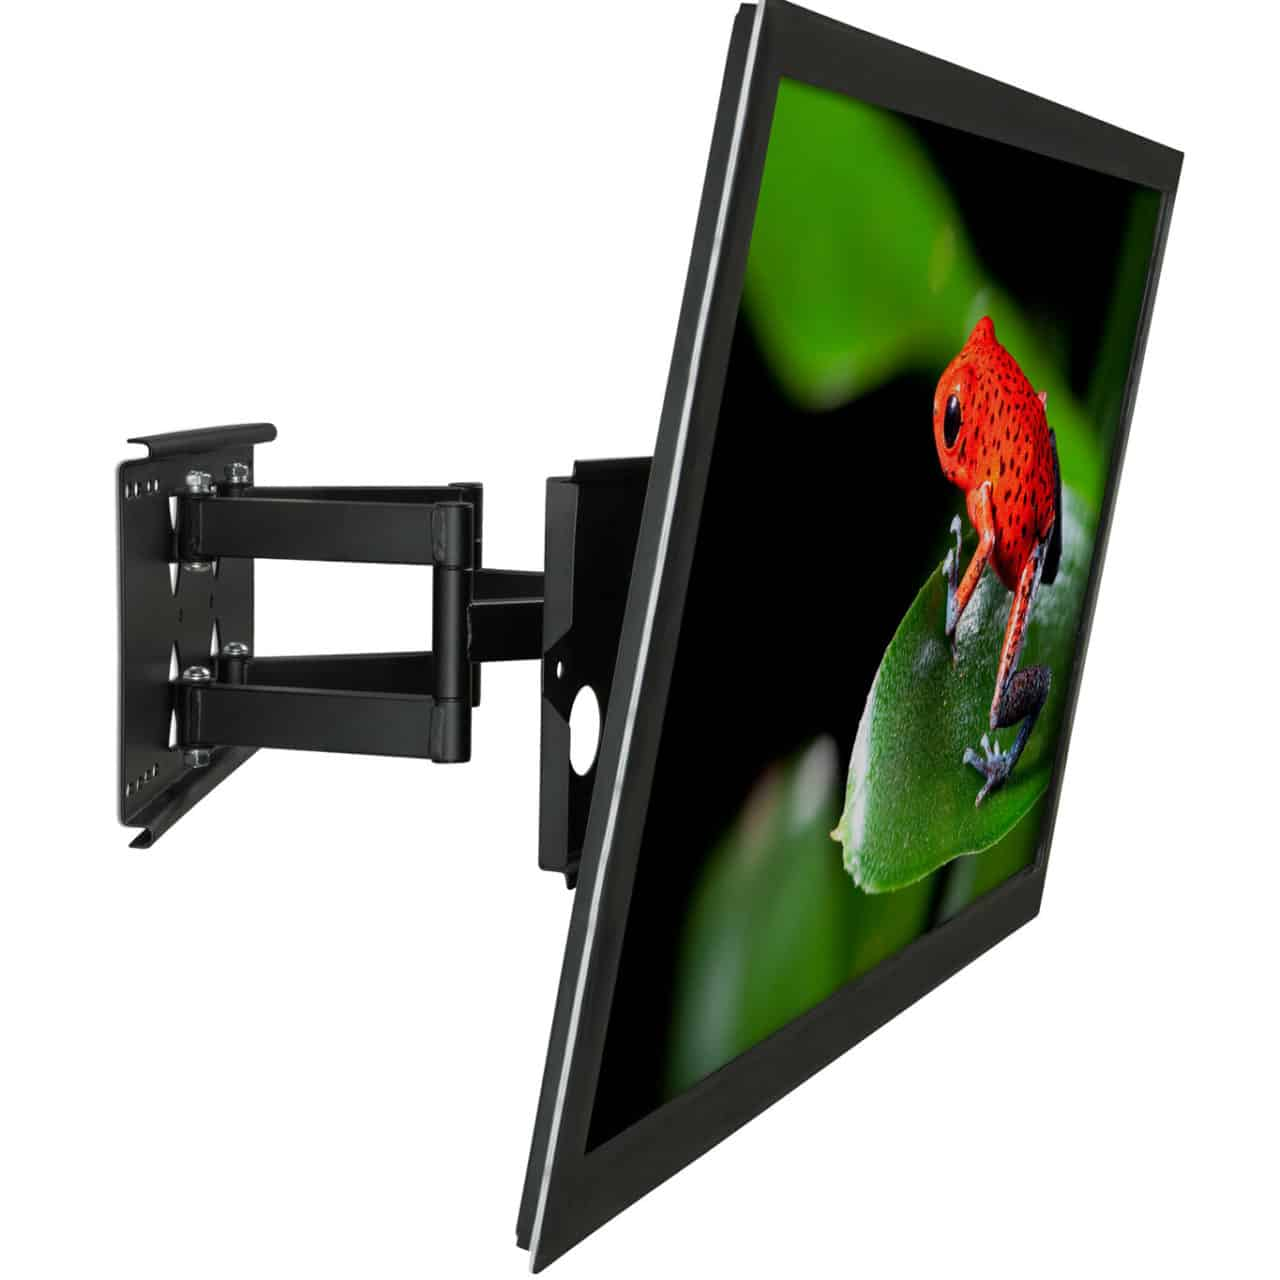 Full Motion TV Mount - Modern TV & Audio